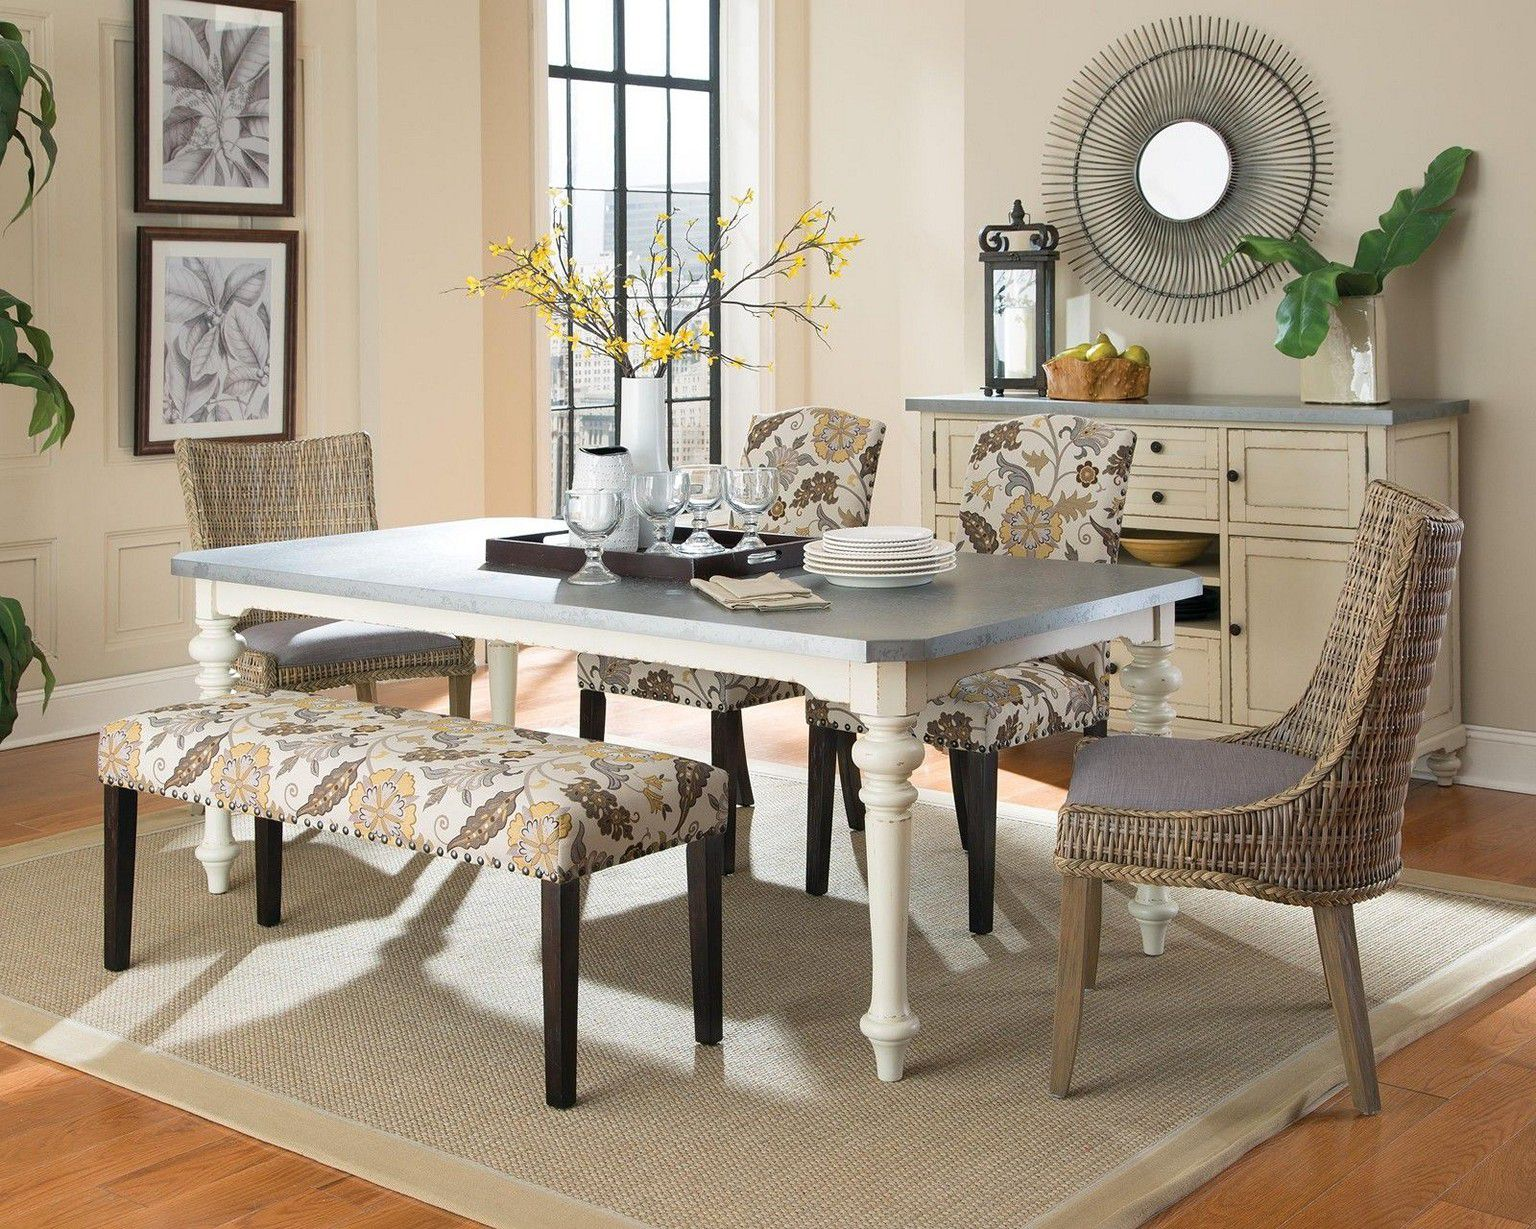 Awesome Combine White Table And Comfy Bench In Rustic Dining Room Decorating Ideas  With Grey Carpet